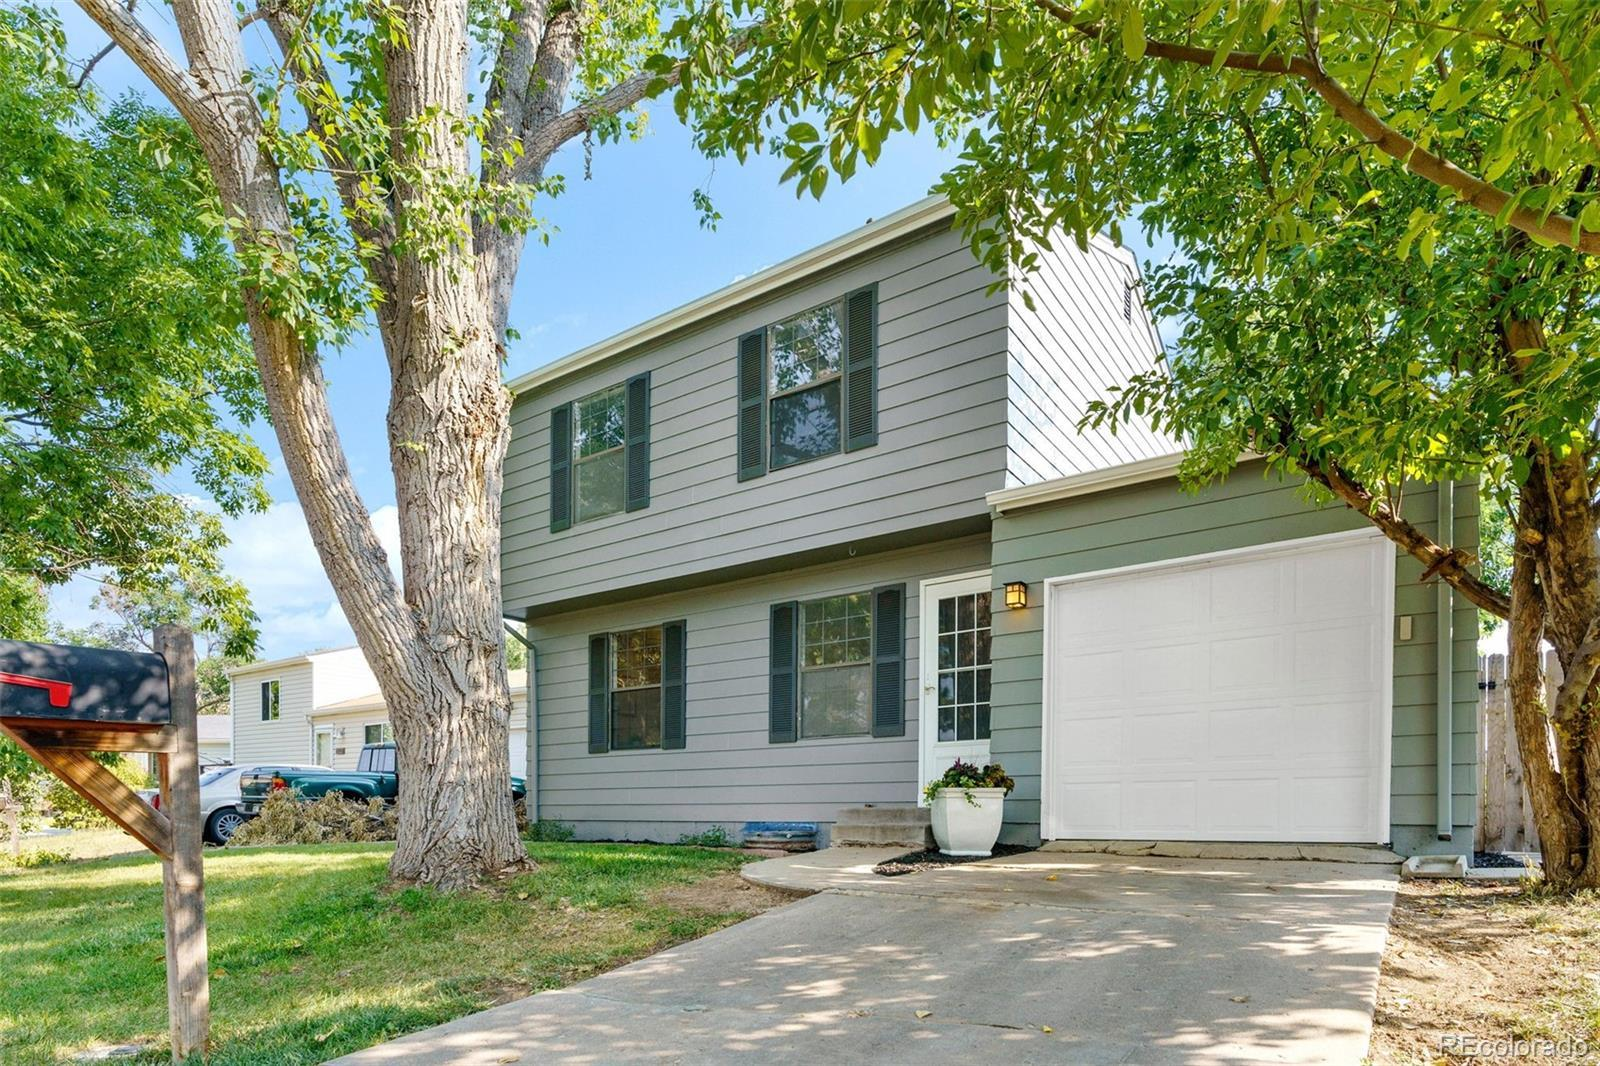 10314 W 107th Circle, Westminster, CO 80021 - #: 8277532